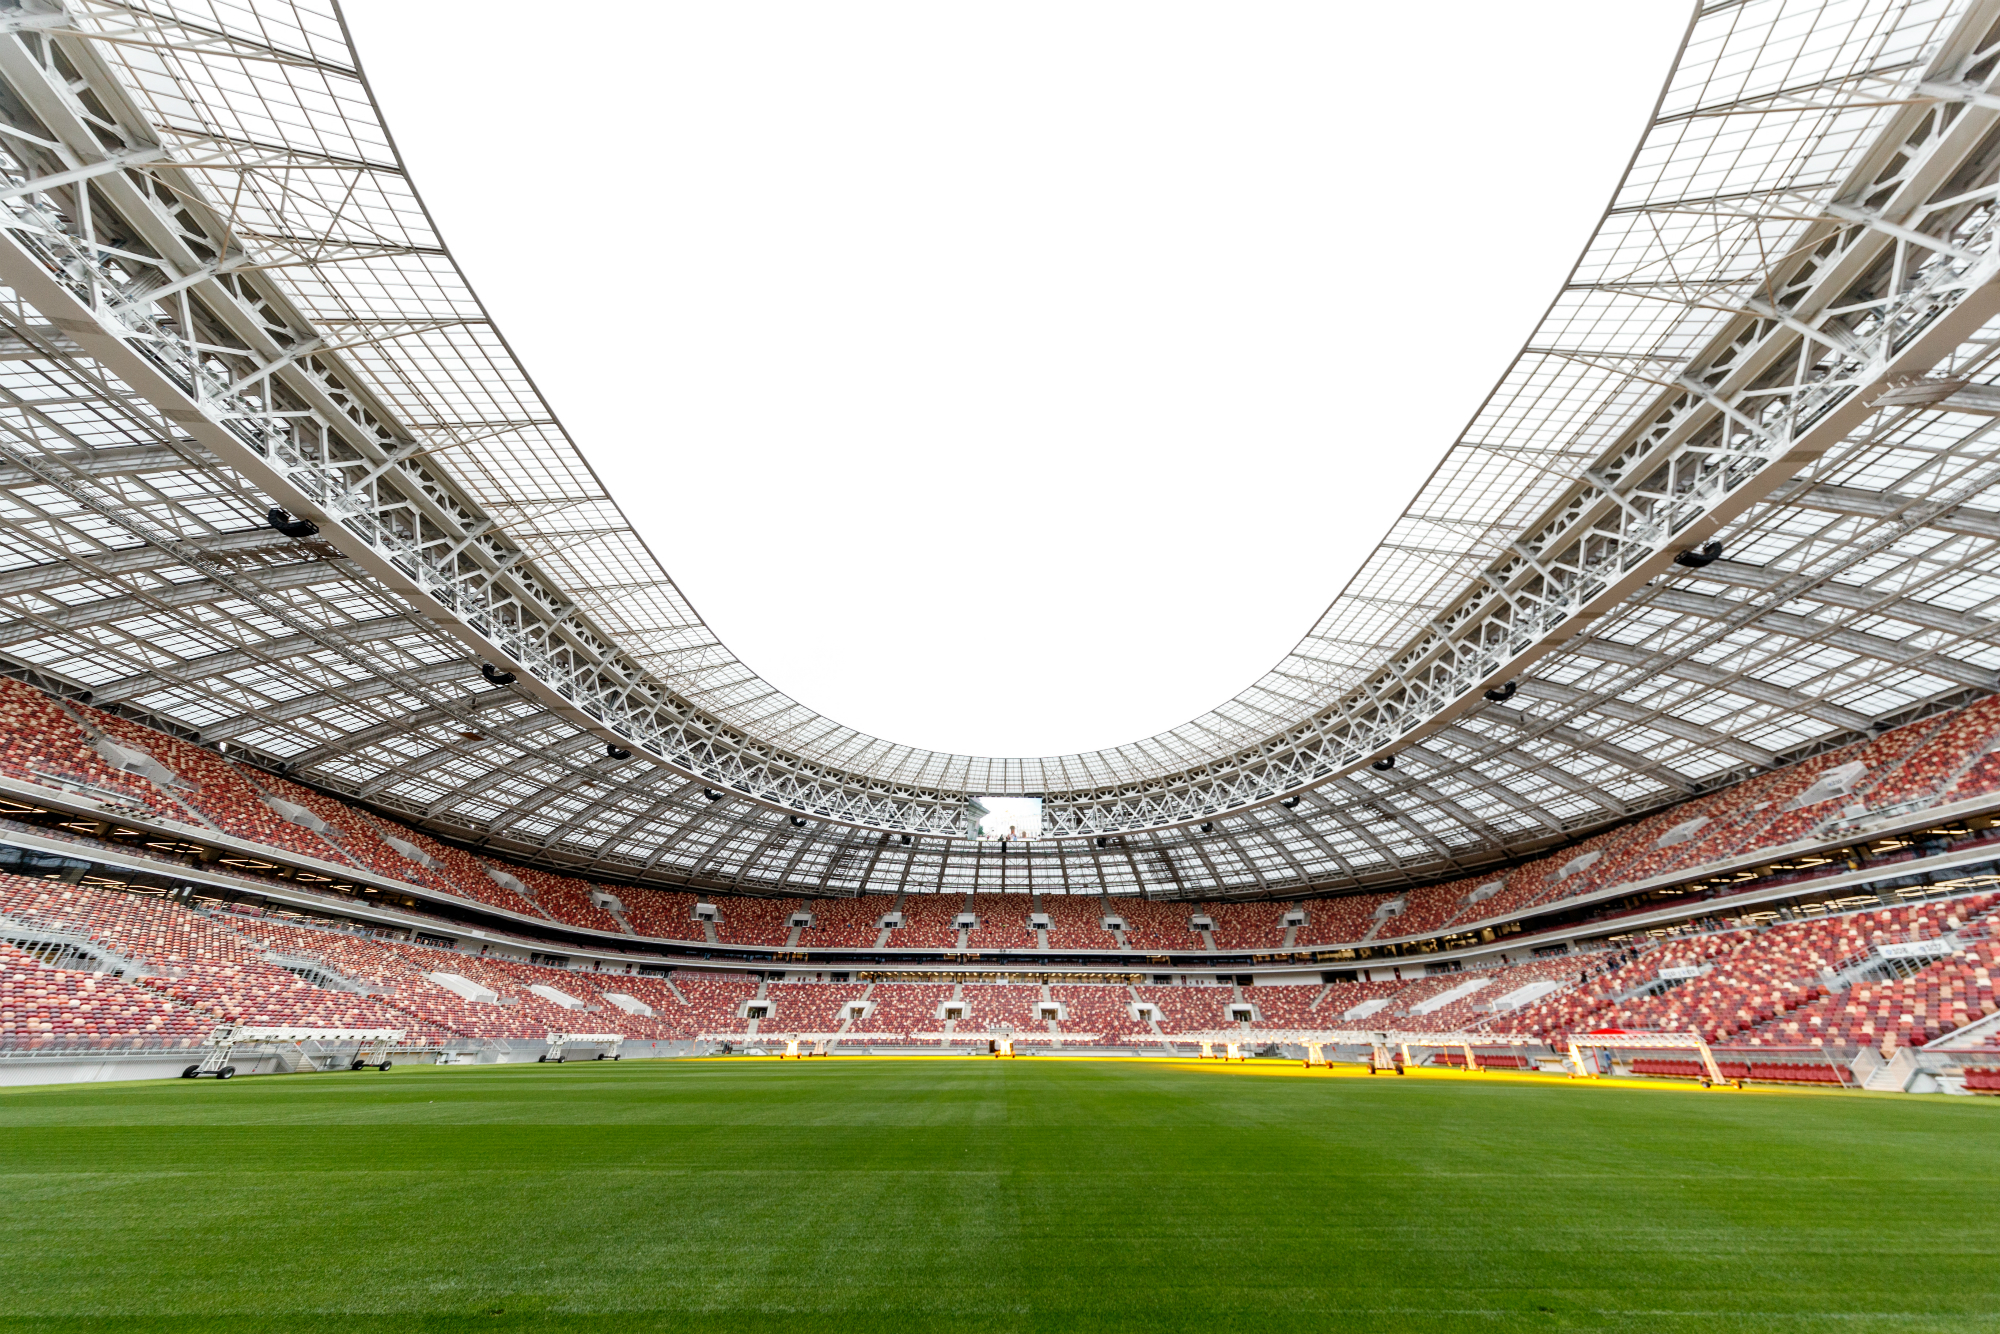 Green Stadiums At The 2018 Fifa World Cup